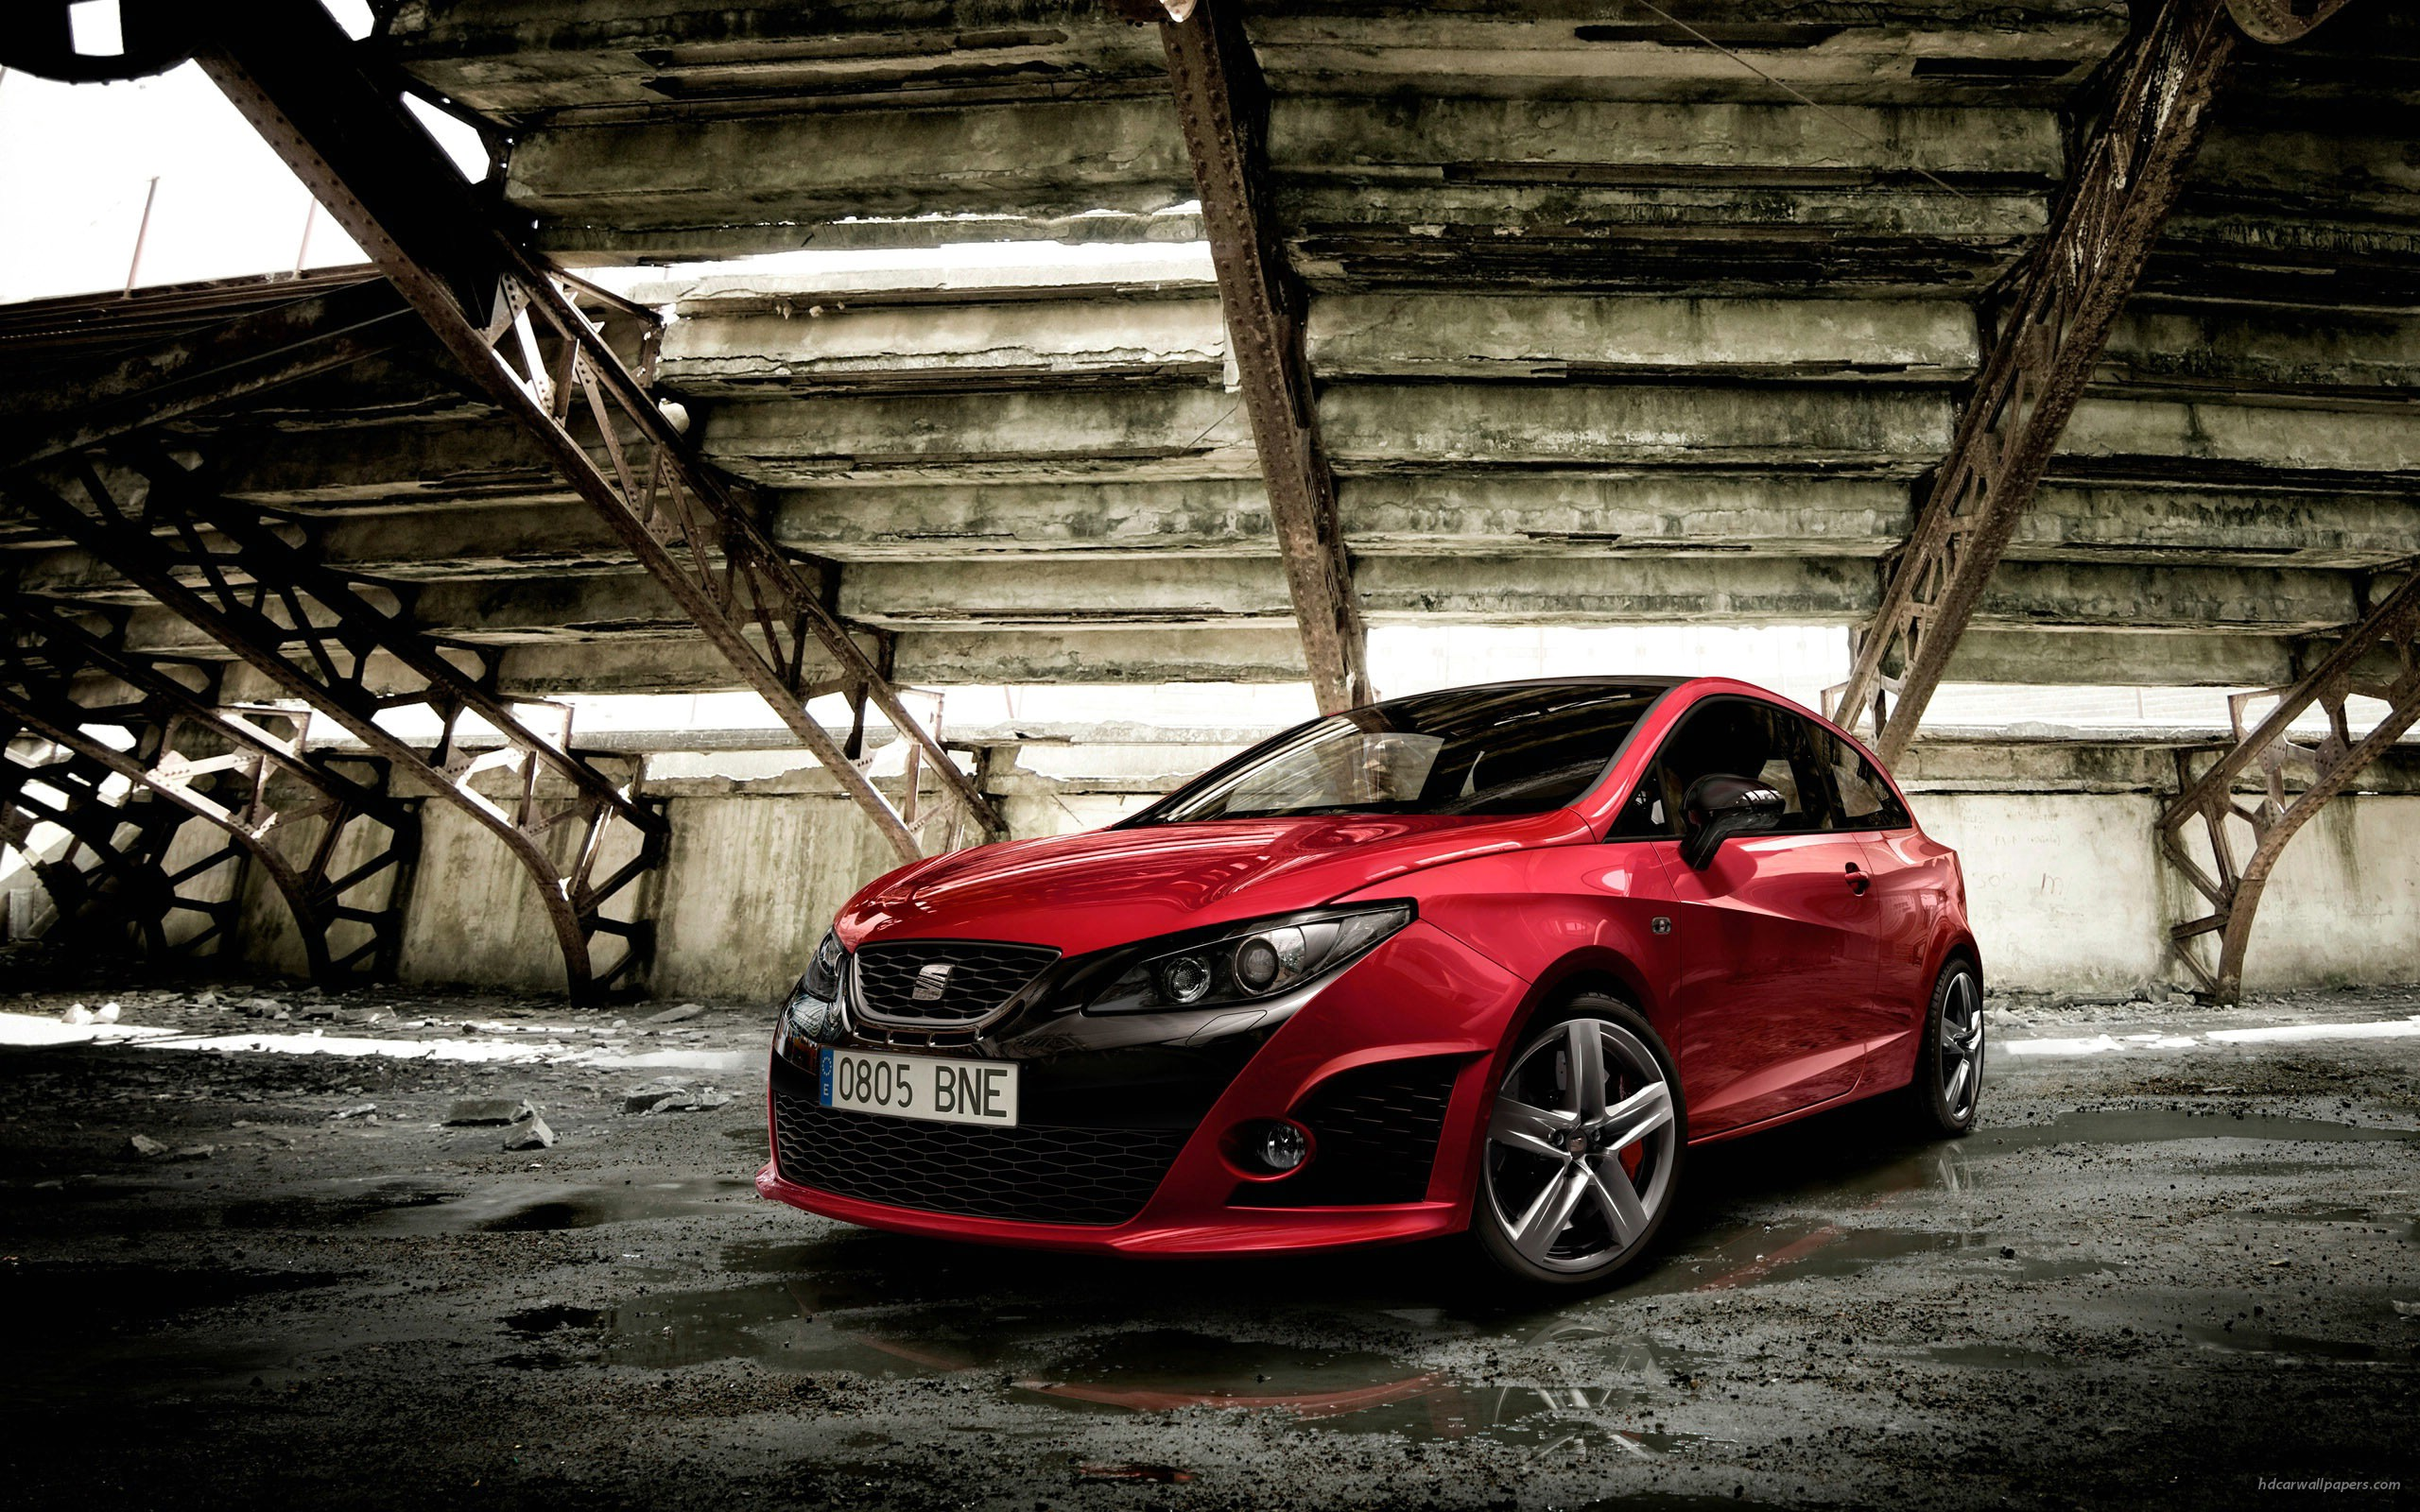 1001 1 Hd Image Fix Cars Free Download Hd Wallpapers: Seat Ibiza Bocanegra Post In Pixel Of 2560×1600, Red Car